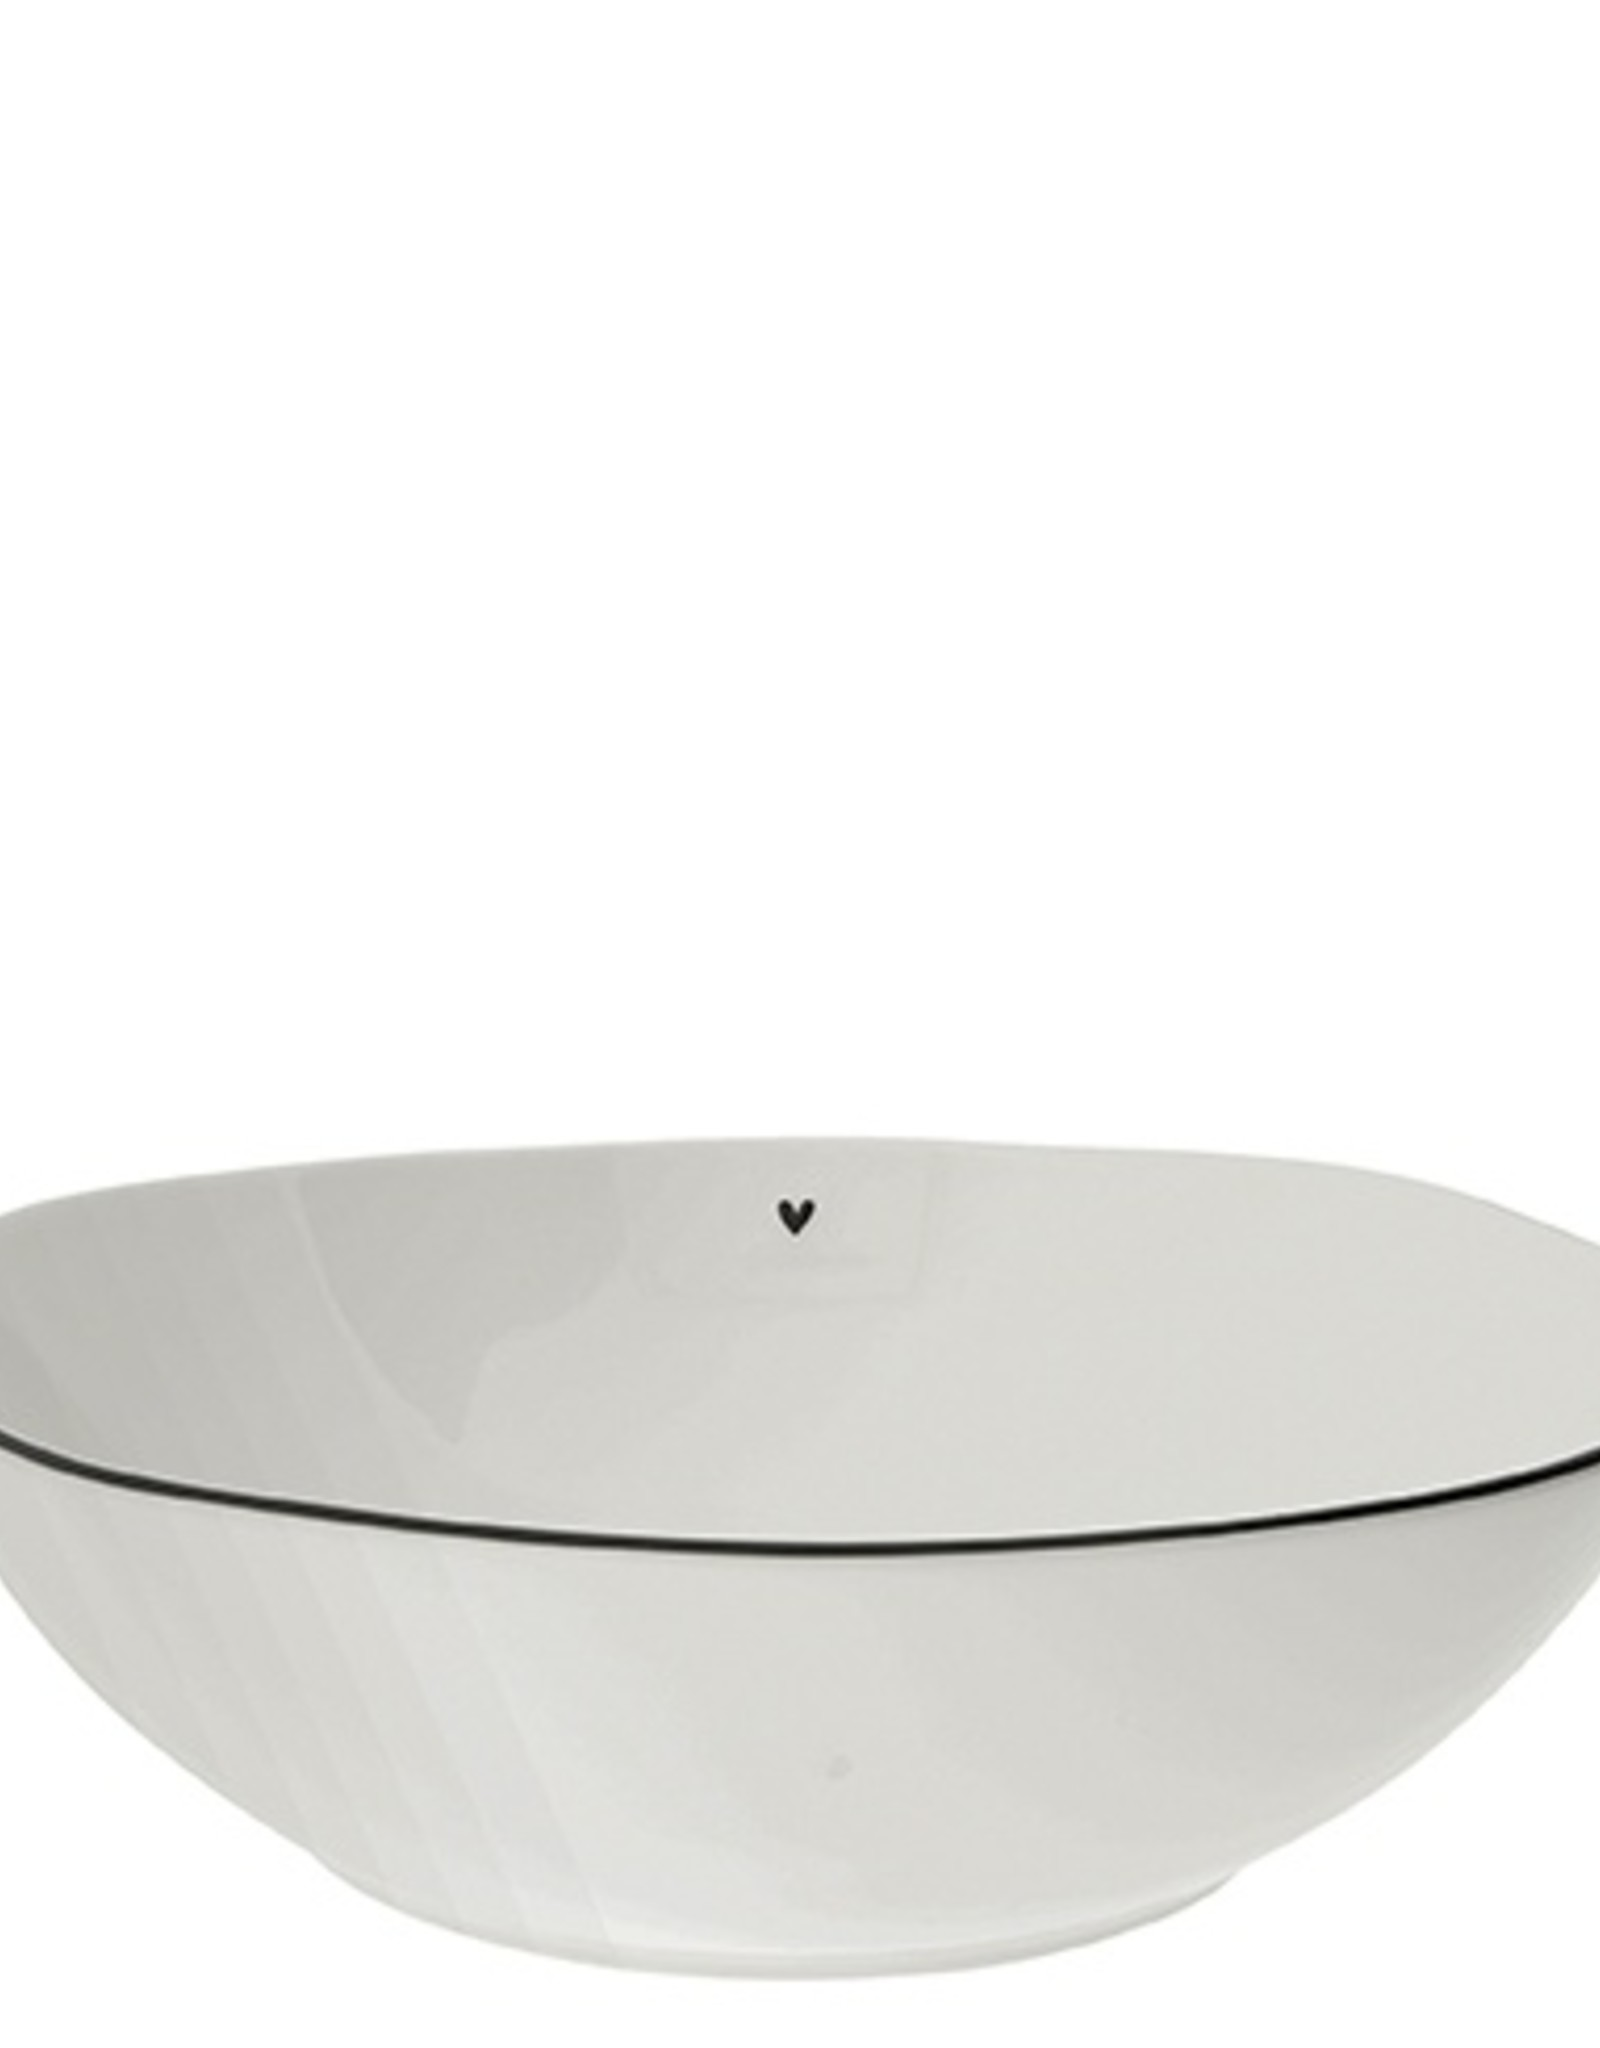 Bastion Collections Salad bowl heart